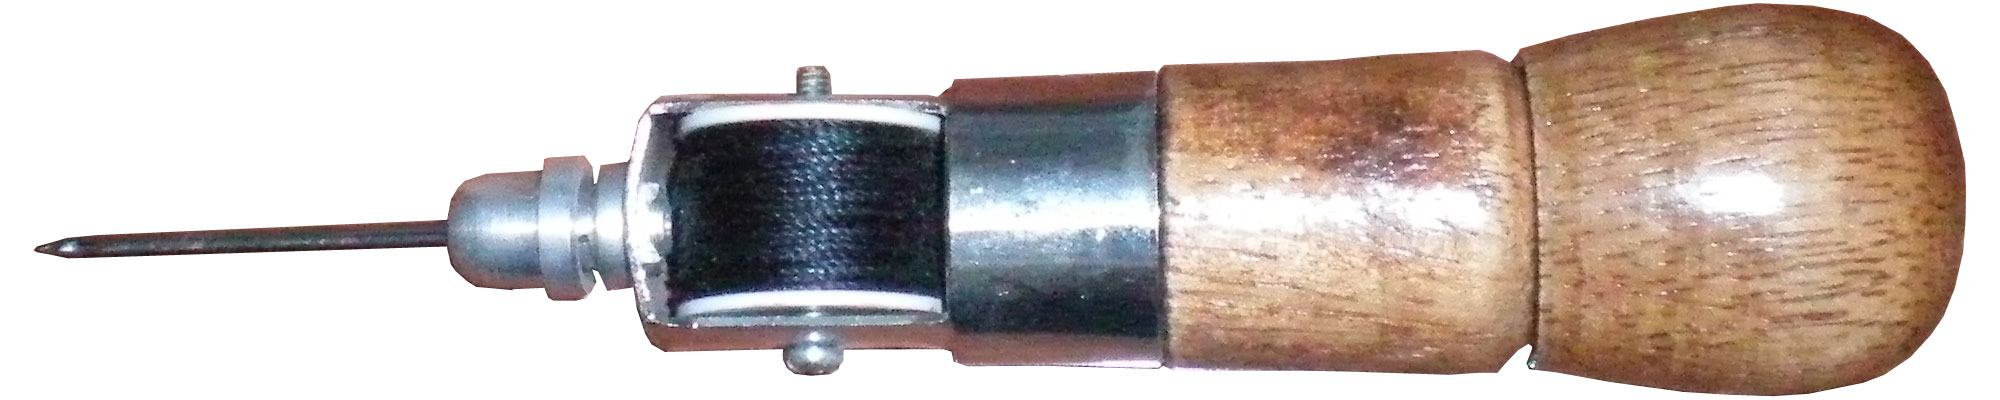 Myers Sewing Awl